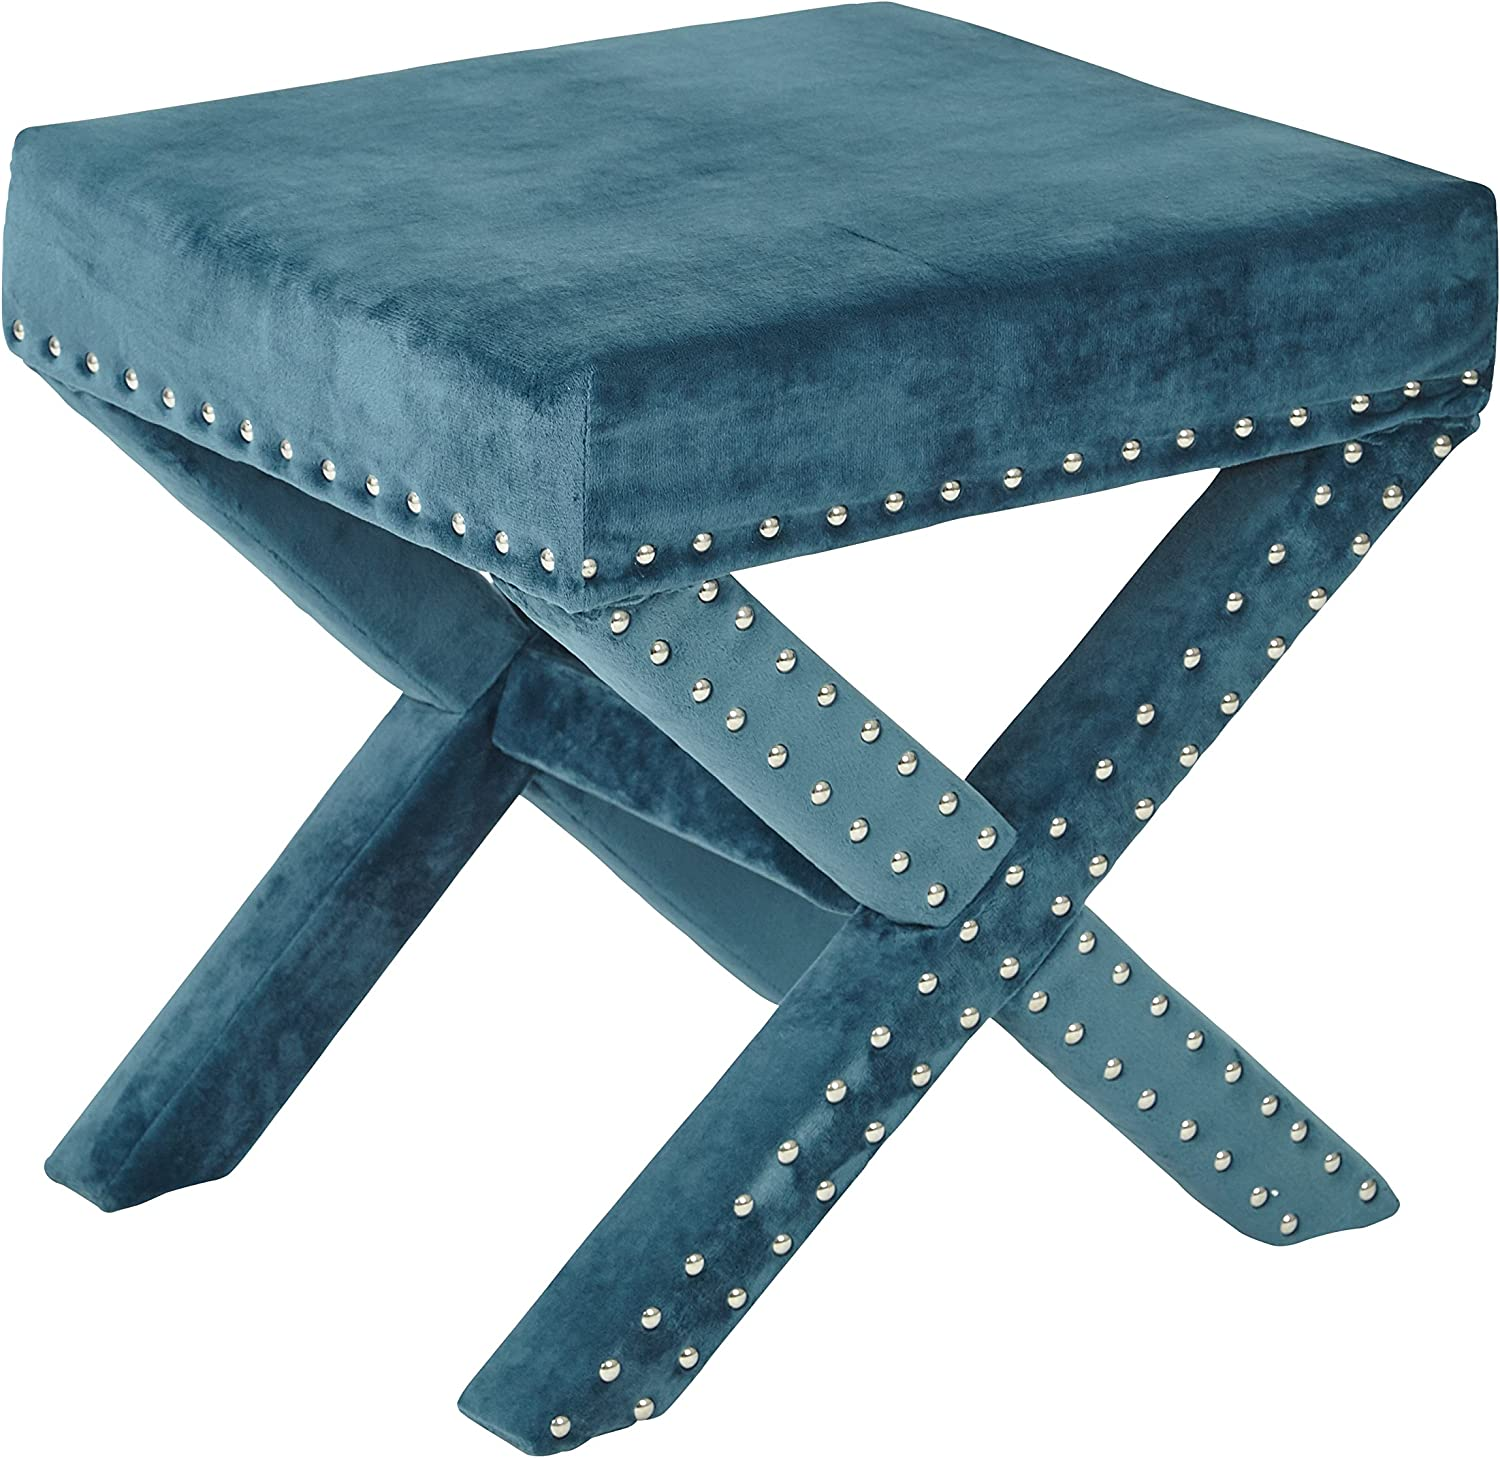 OSP Accents SB313AS-MV14 Katie Upholstered X-Style Bench with Nailhead Accents, Azure Micro Velvet